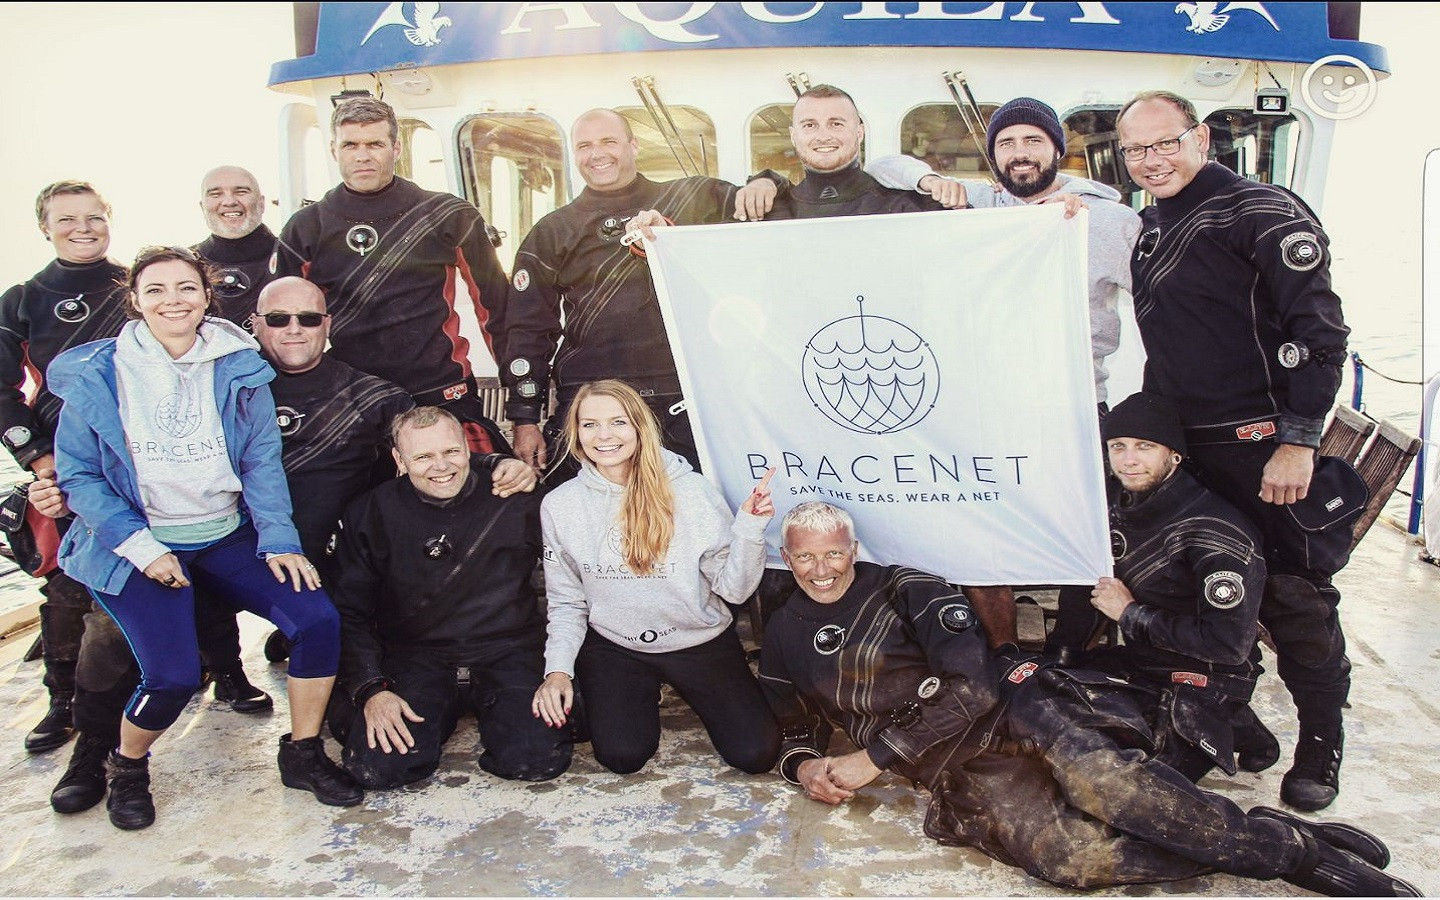 Bracenet- Save the seas